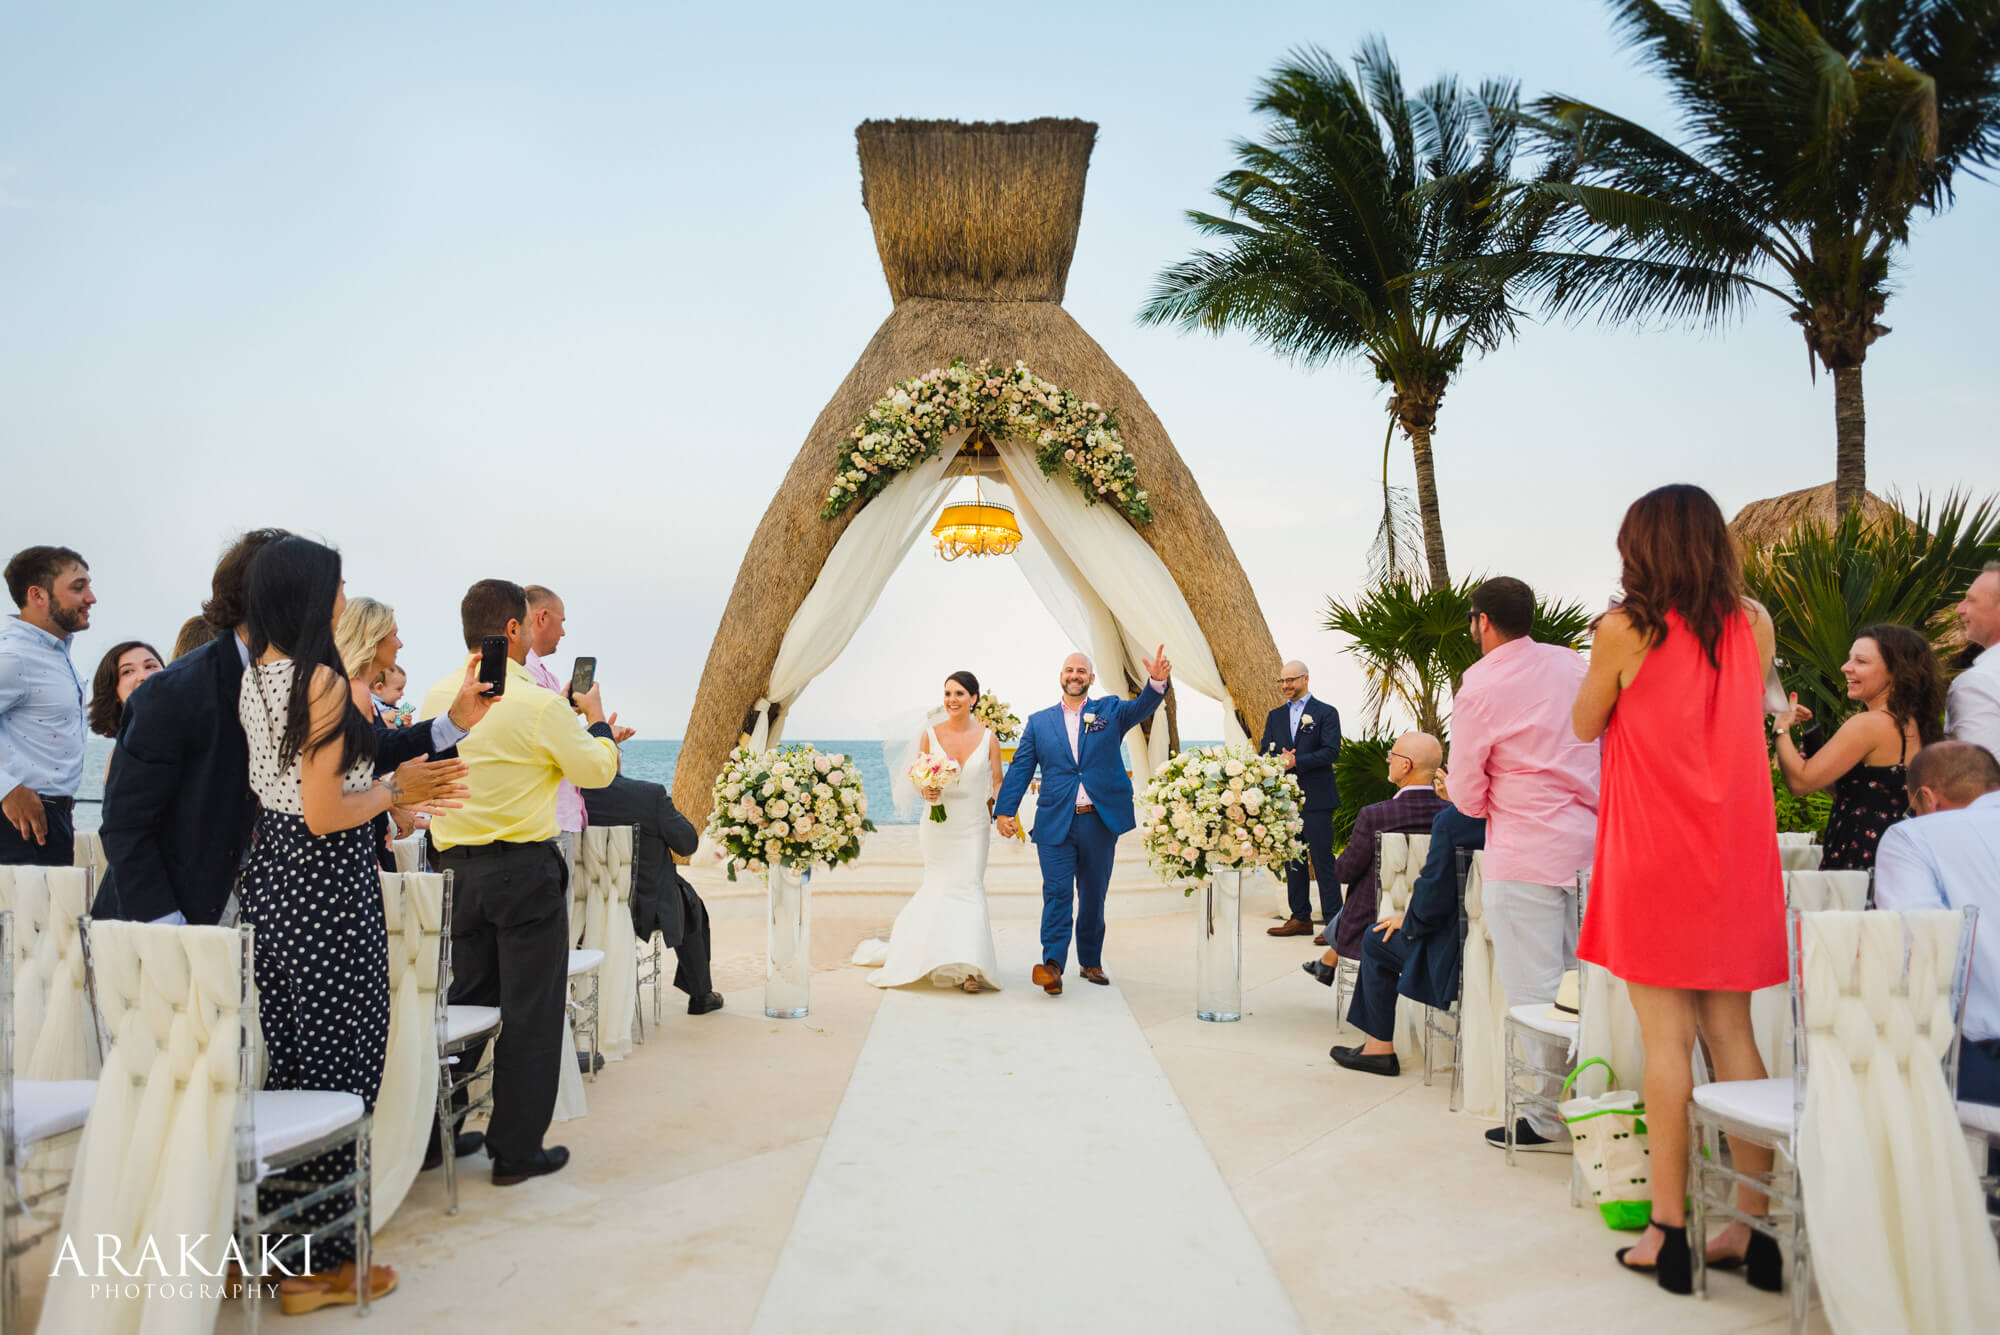 1-protography-investment-wedding For the bride